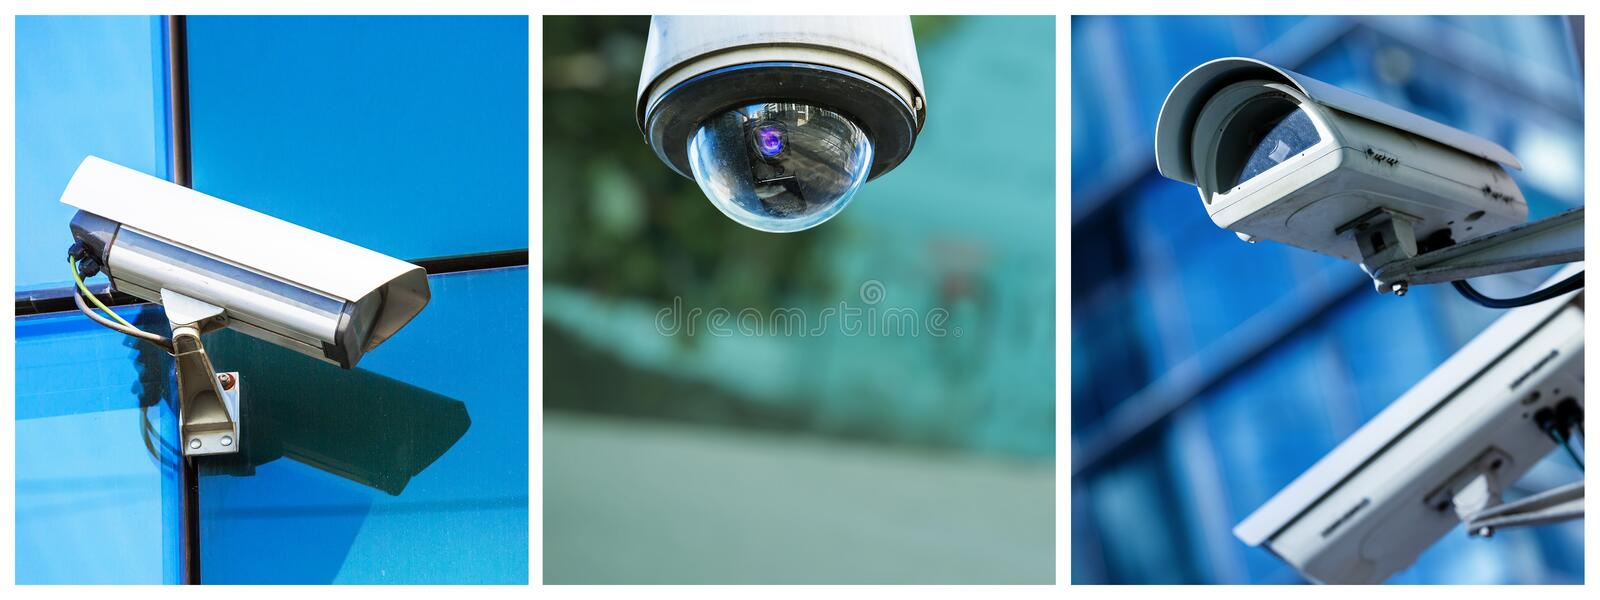 Panoramic collage of security CCTV camera or surveillance system. Panoramic collage of closeup security CCTV camera or surveillance system stock photos